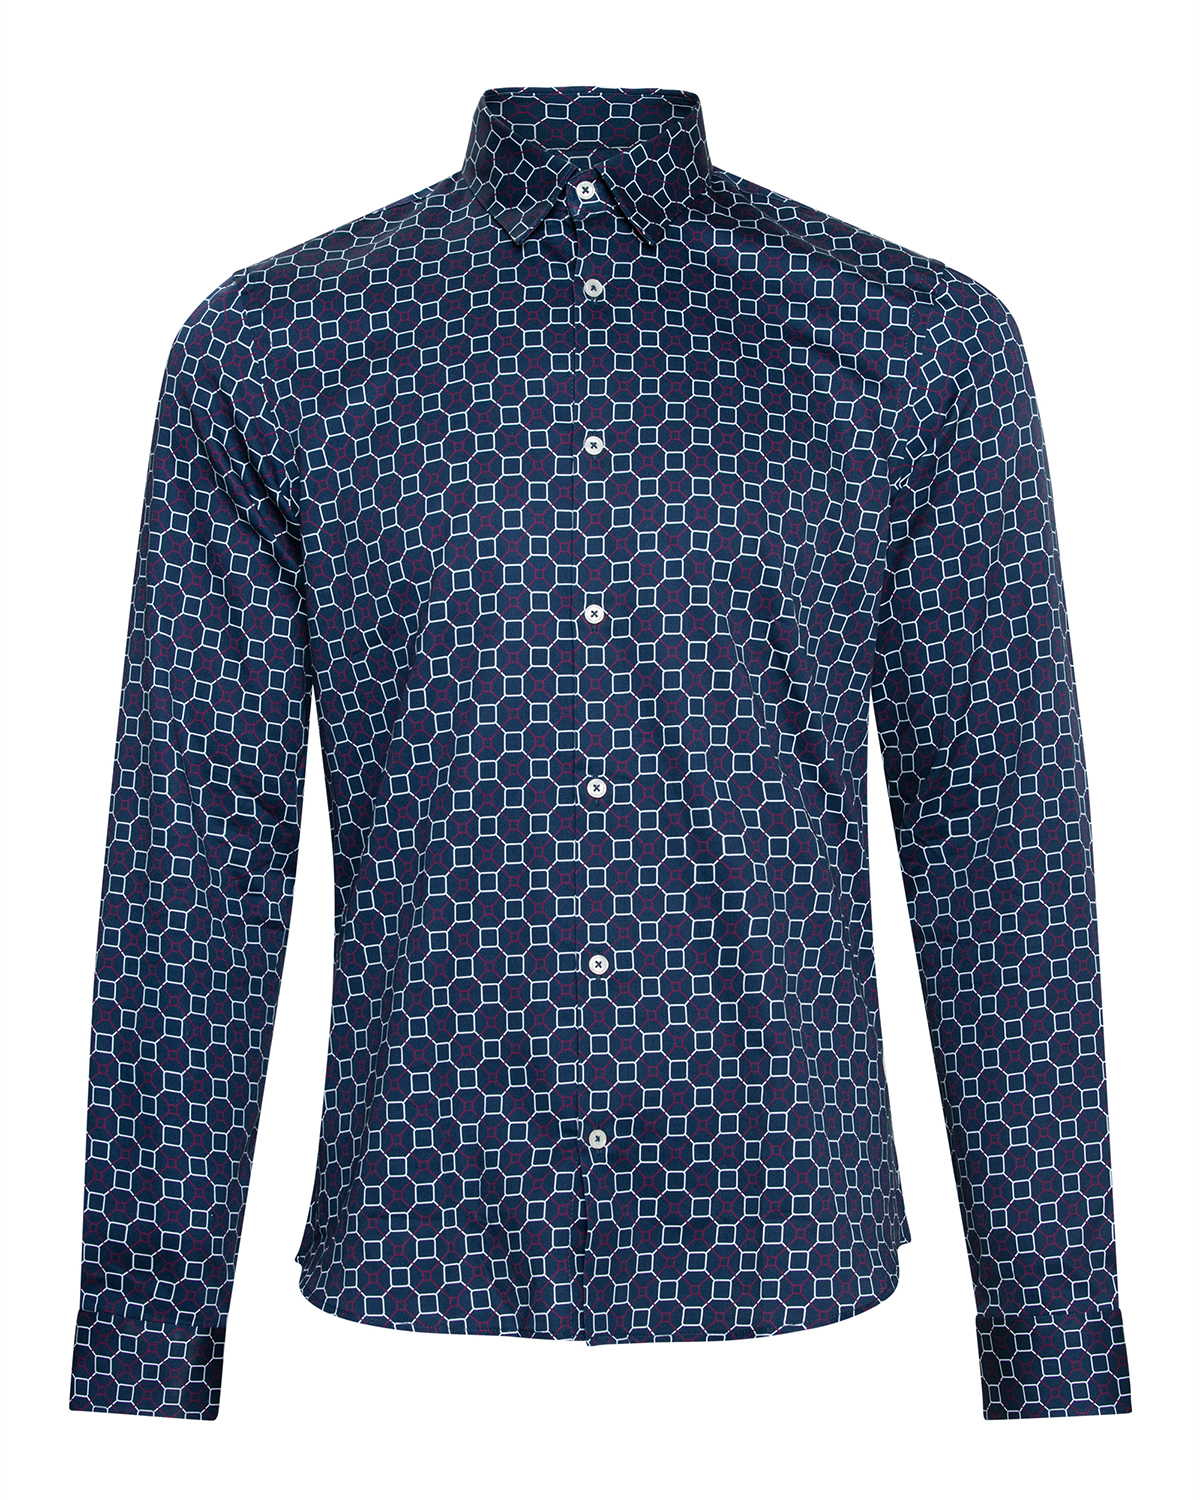 Overhemd Print.Heren Slim Fit Button Down Honeycomb Print Overhemd 79419635 We Fashion